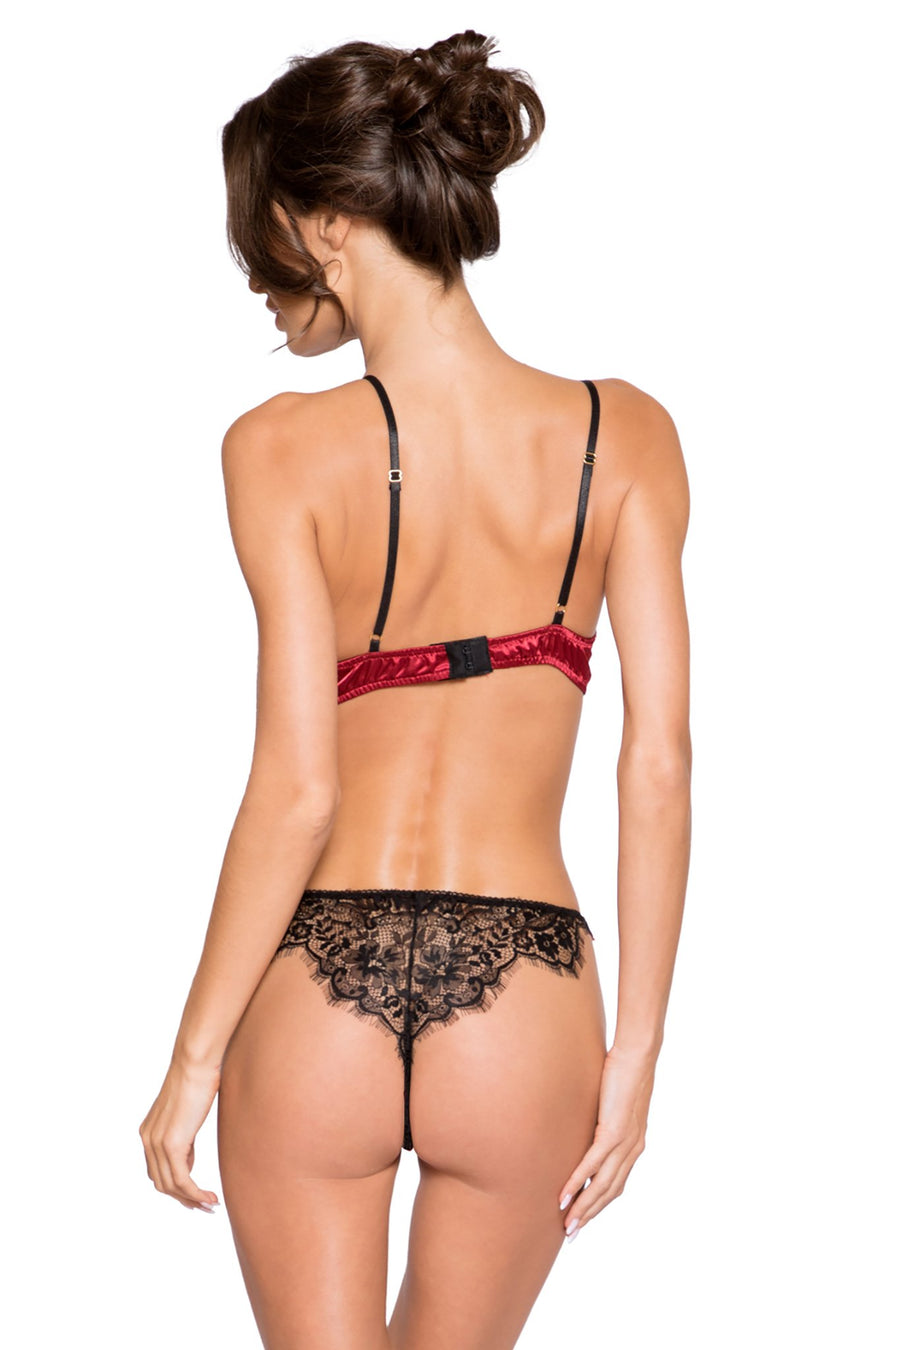 Lace & Satin Short Set - Intimates, Roma - YourLamode